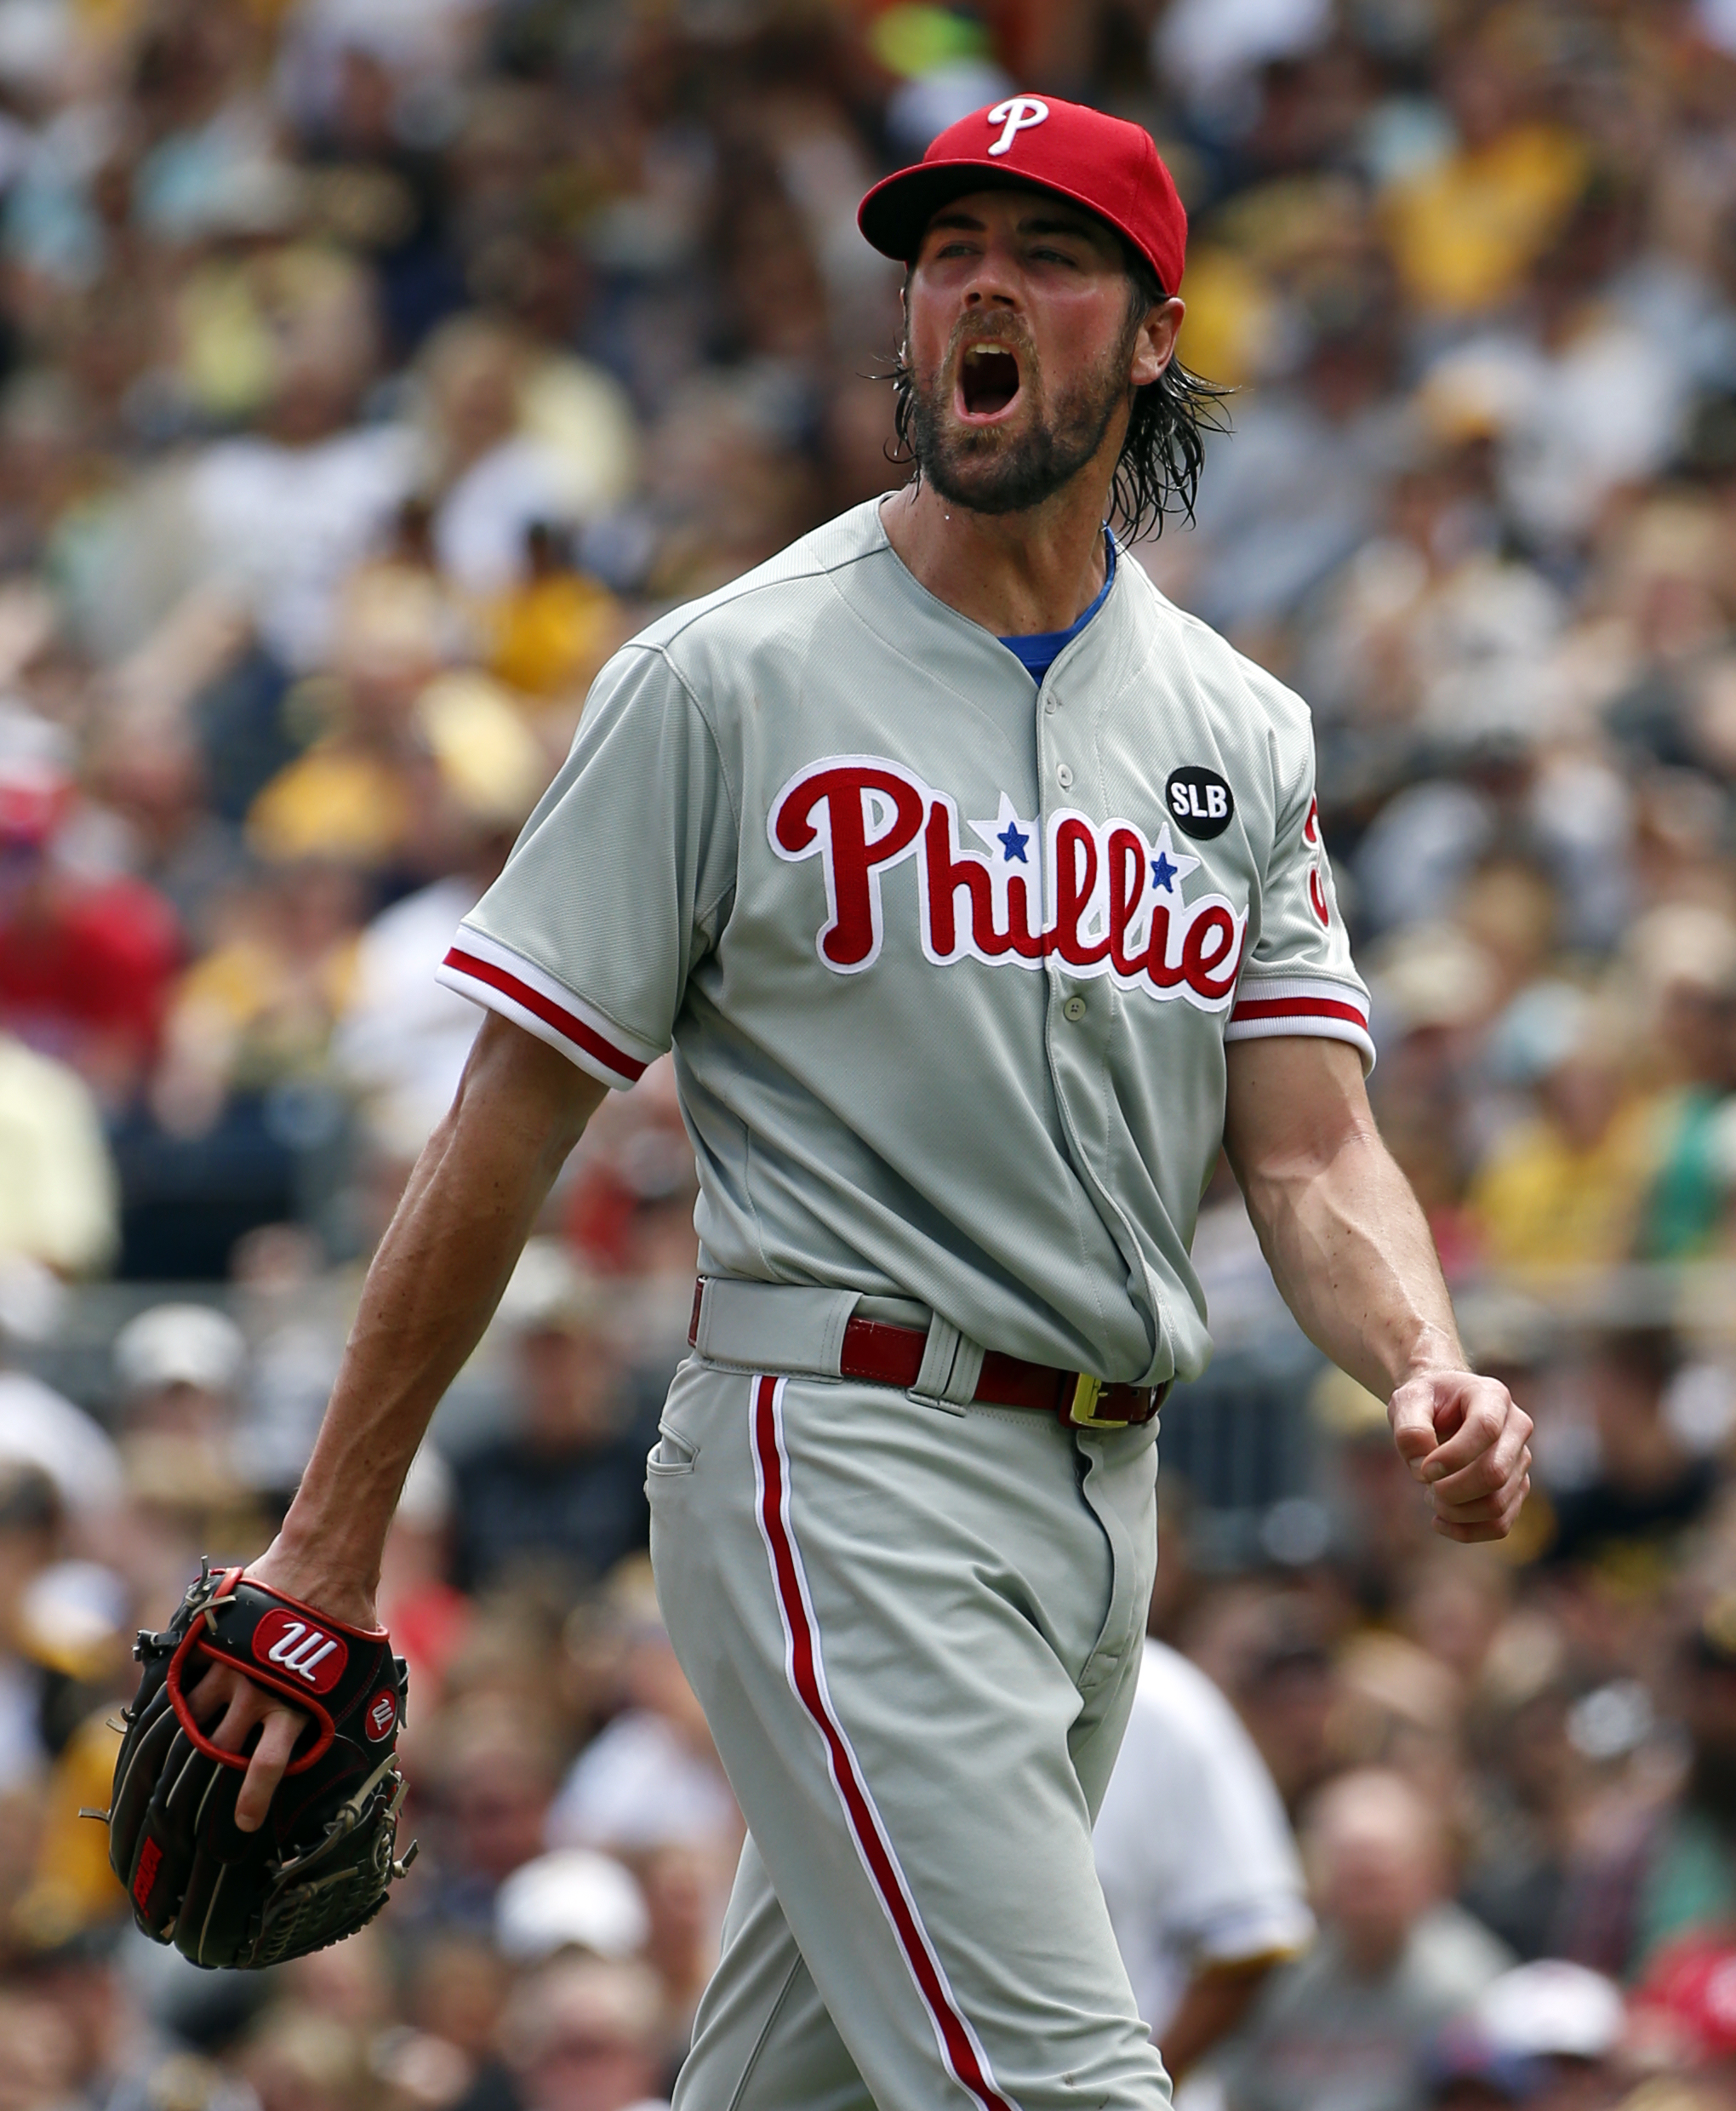 Philadelphia Phillies starting pitcher Cole Hamels walks to the dugout after pitching the fourth inning of a baseball game against the Pittsburgh Pirates in Pittsburgh, Sunday, June 14, 2015. The Pirates won 1-0 in 11 innings. (AP Photo/Gene J. Puskar)